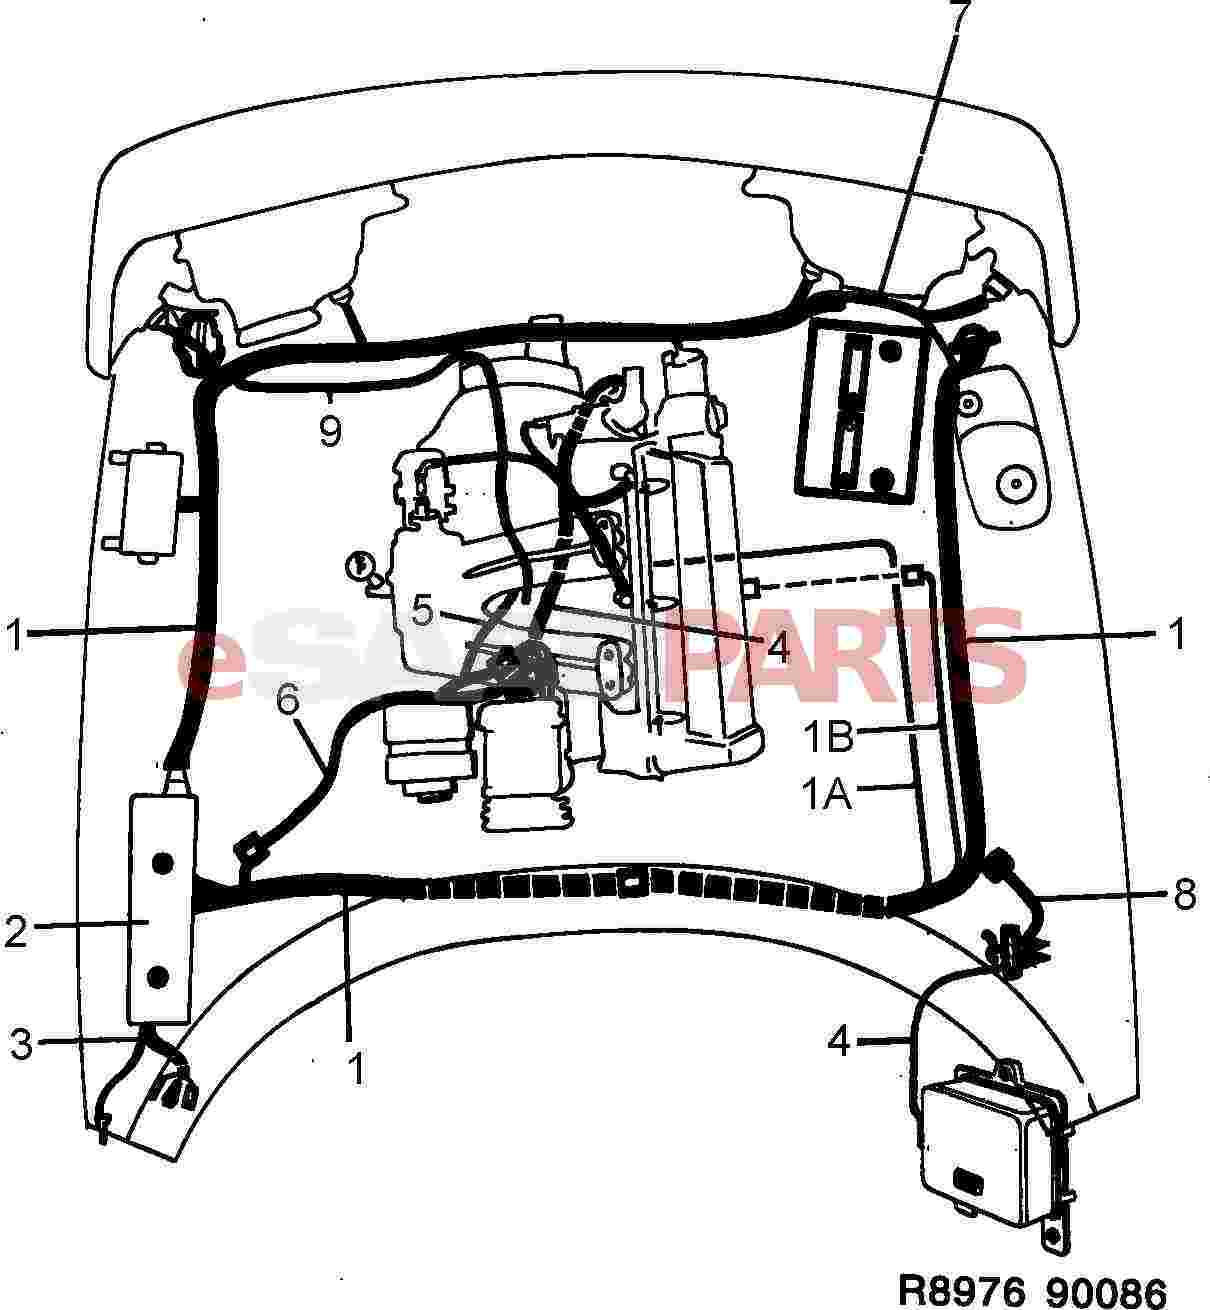 saab 900 wiring harness data wiring diagram Saab 900 SE Starter Diagram